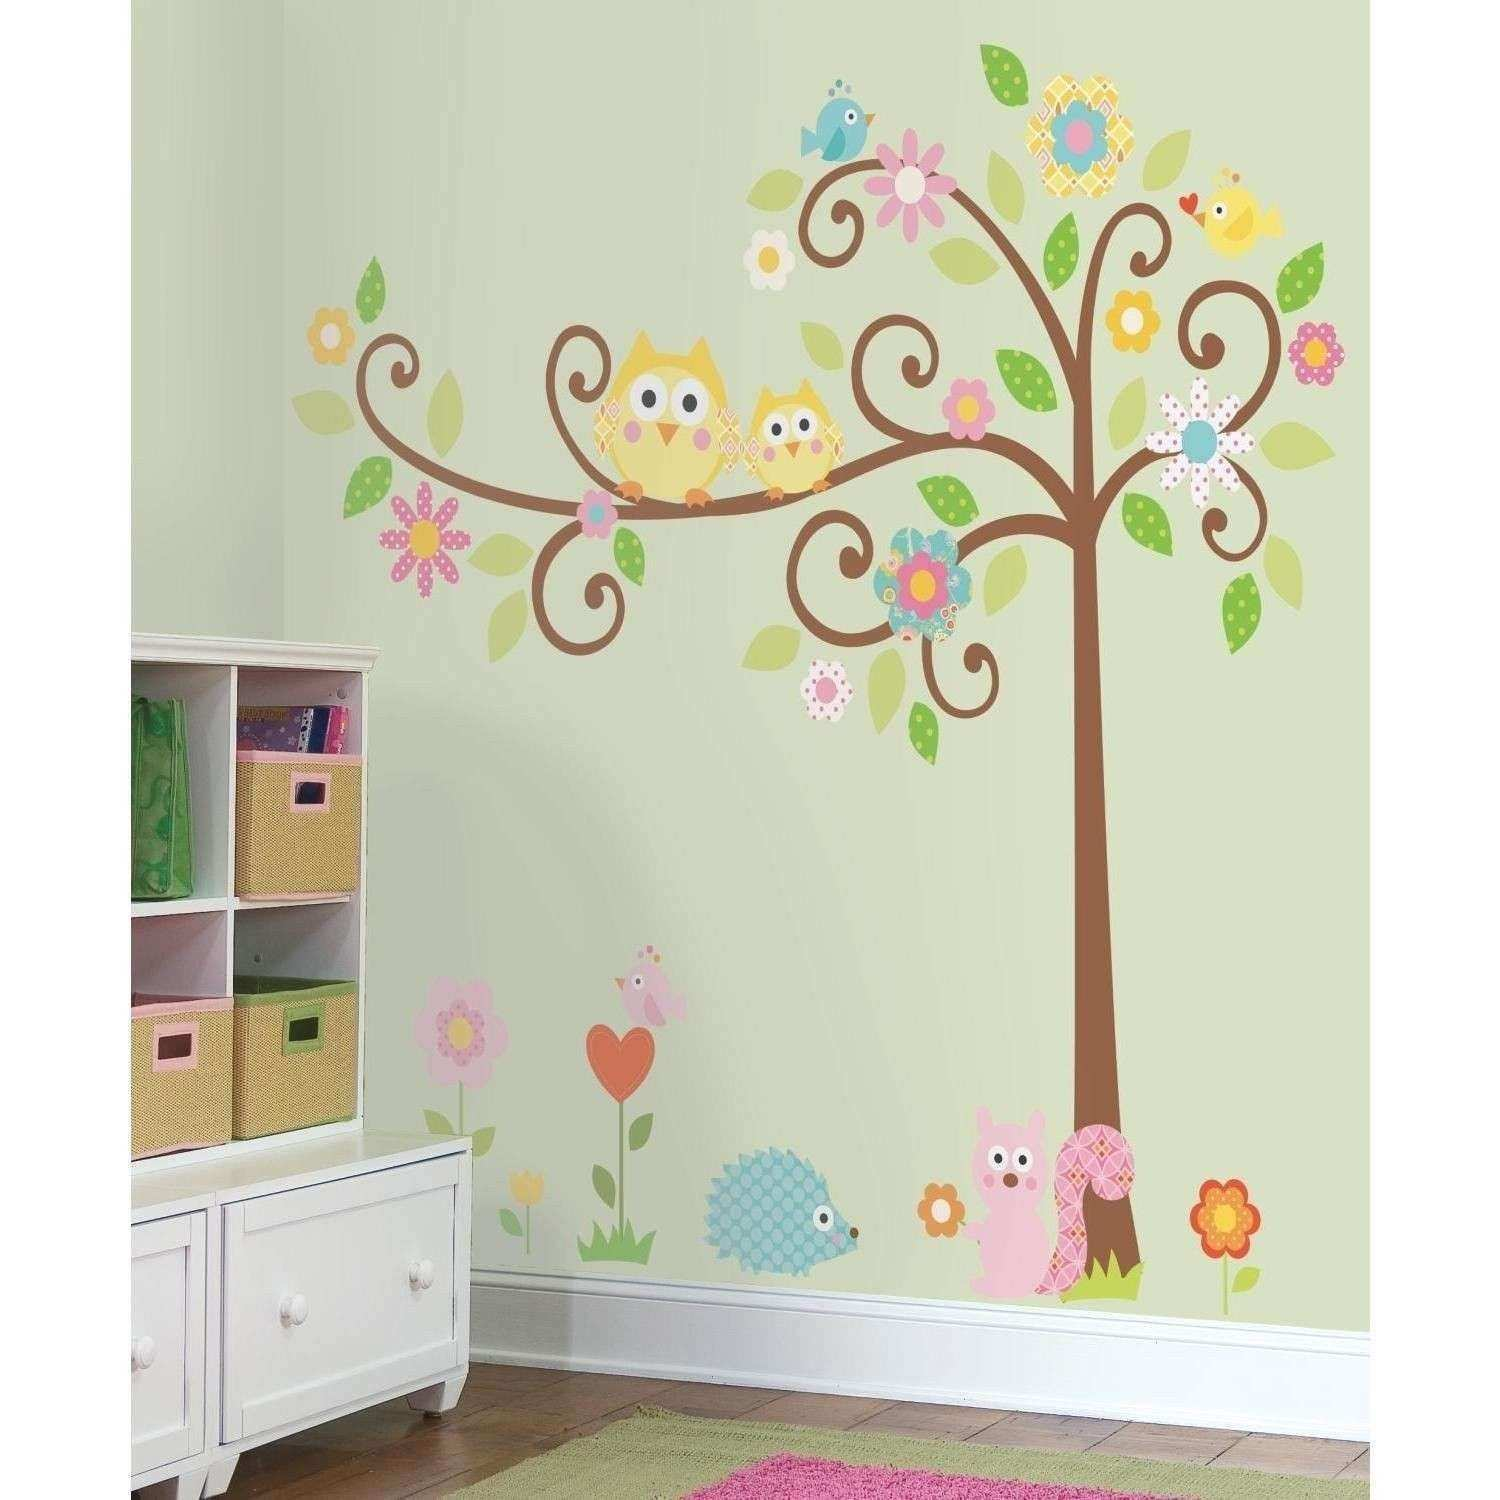 Lovely Paint Decals for Walls